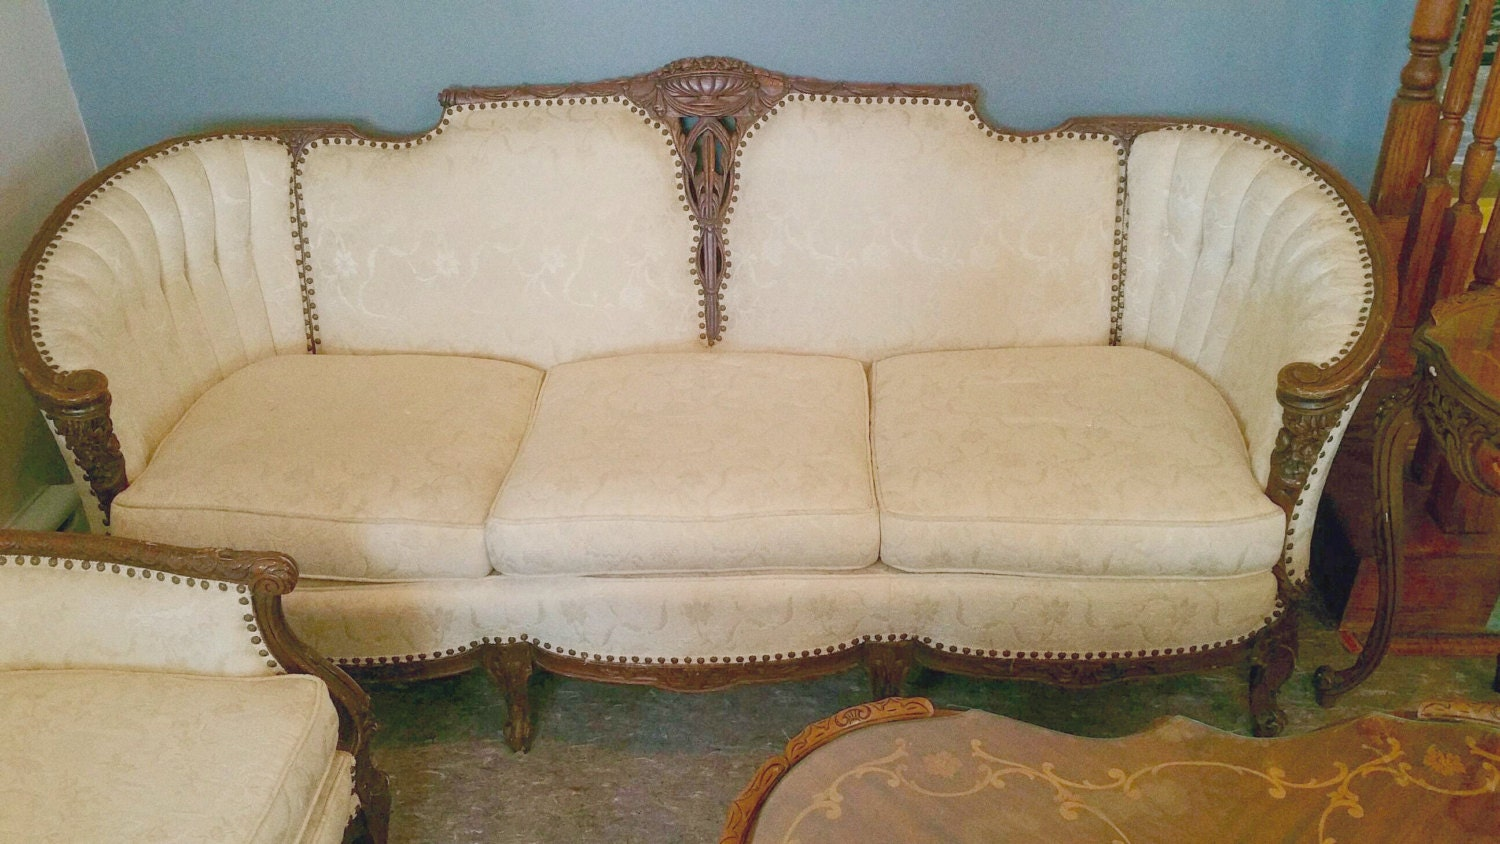 sold french provincial living room set by estatesalechicago